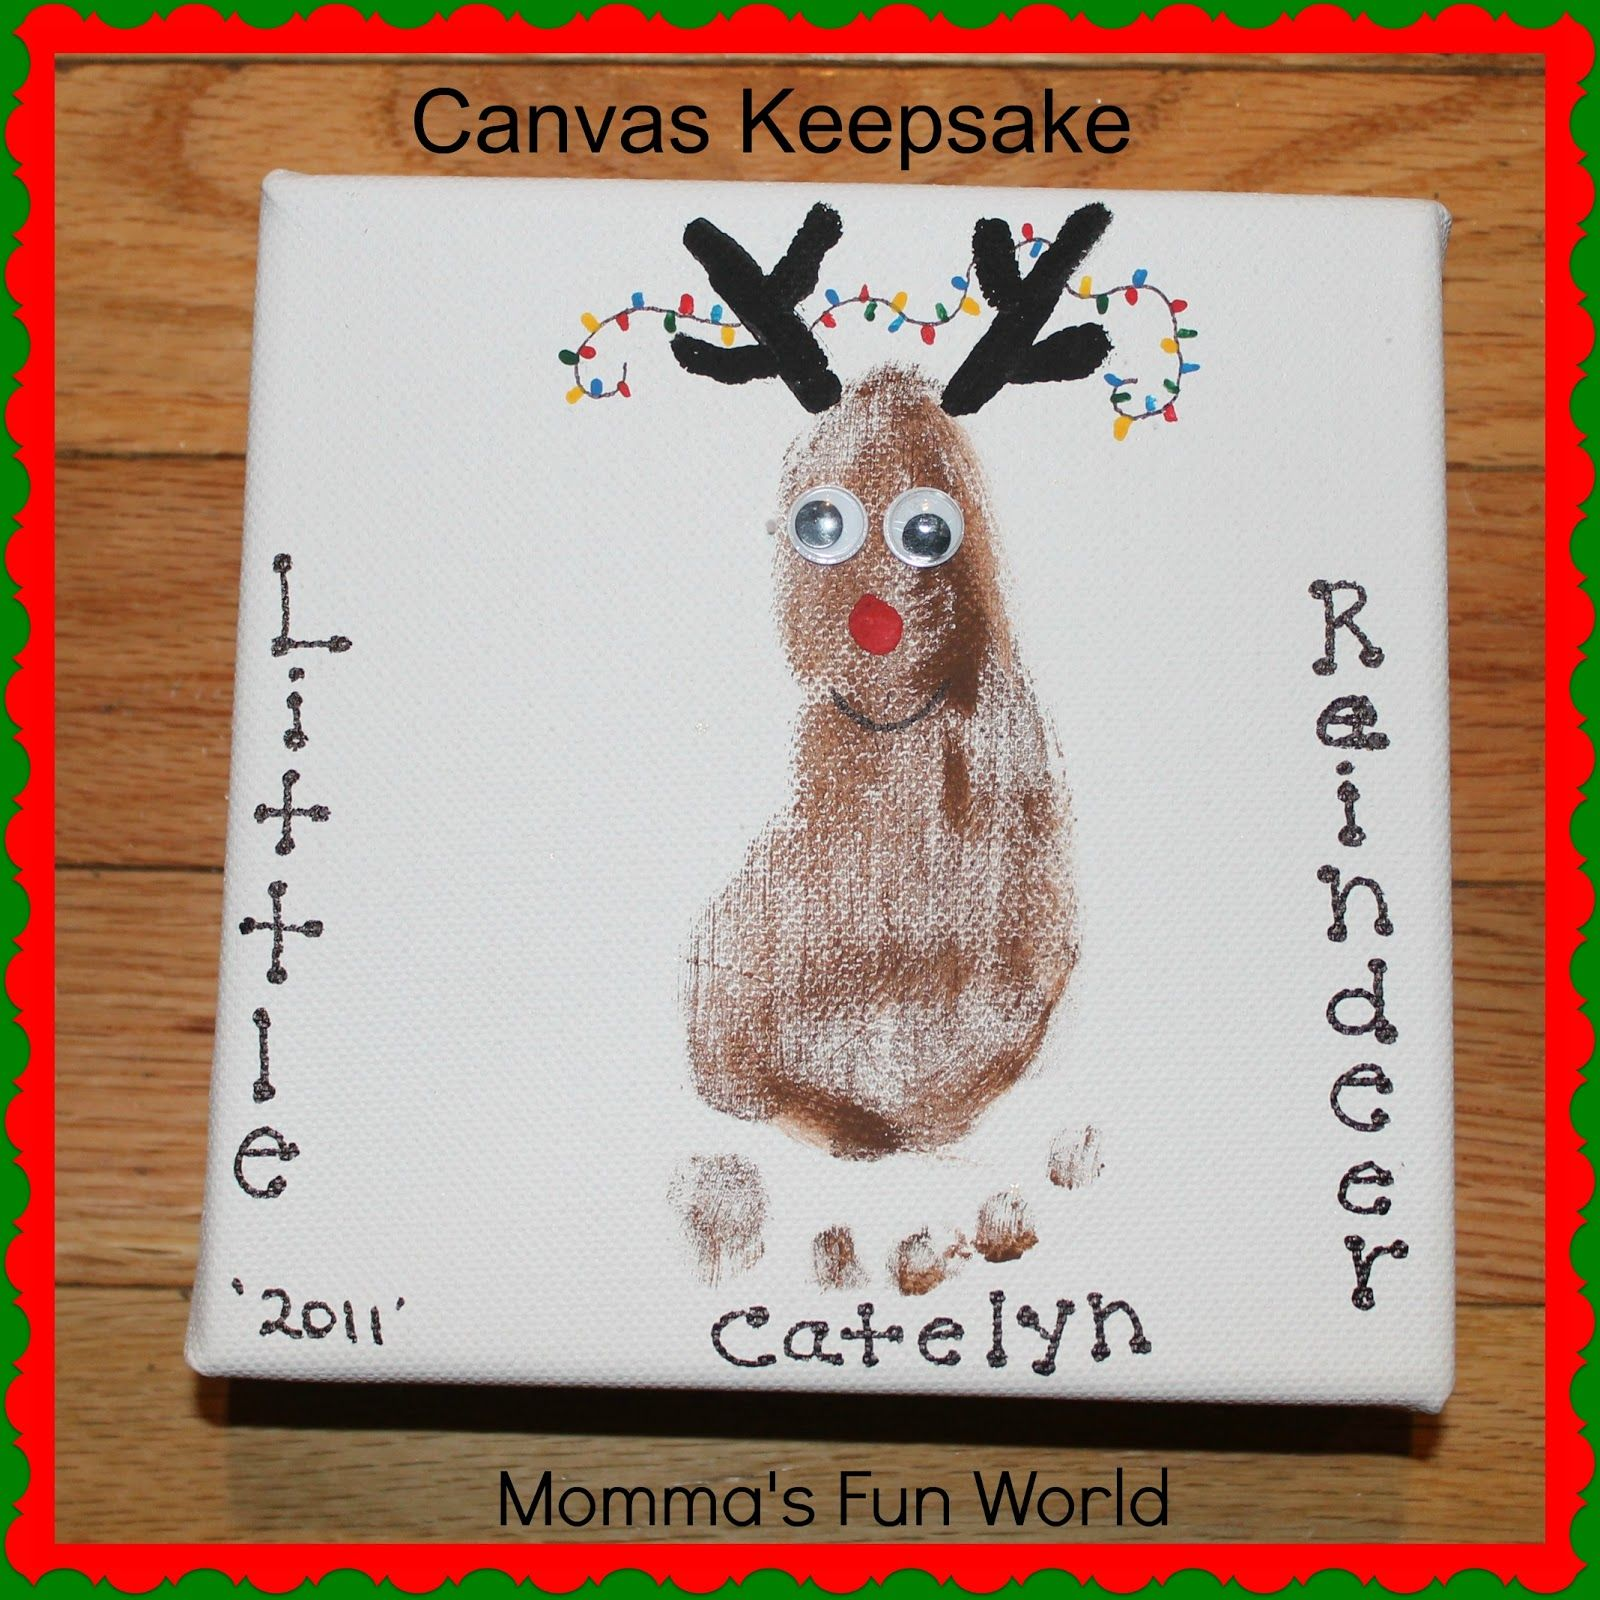 Canvas Christmas Keepsake Footprint, Great Gift To Make In